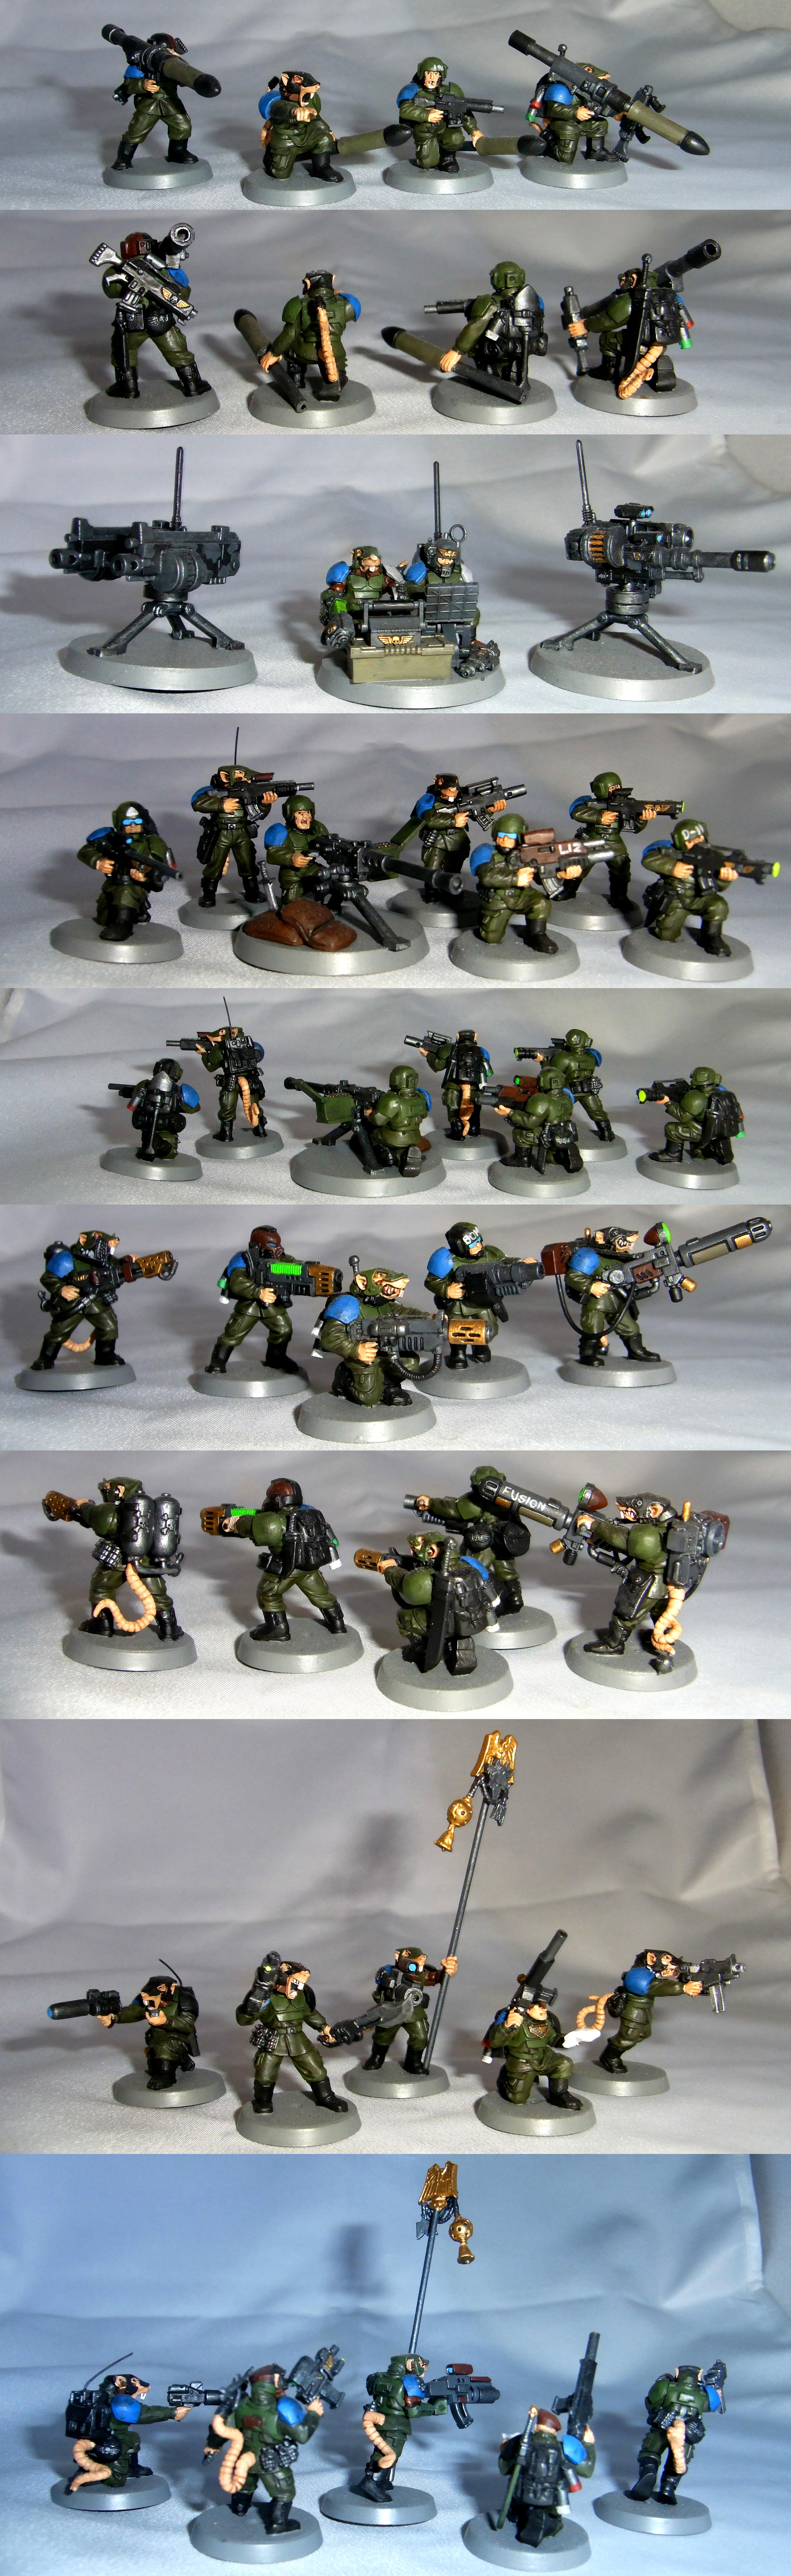 Assault, Cannon, Command, Flamer, Fusion, Guard, Guardsmen, Guns, Heavy, Korebnn, Machinegun, Man, Meltagun, Oicw, Plasma, Rat, Riffle, Rpg, Soldiers, Standard, Stubber, Weapon